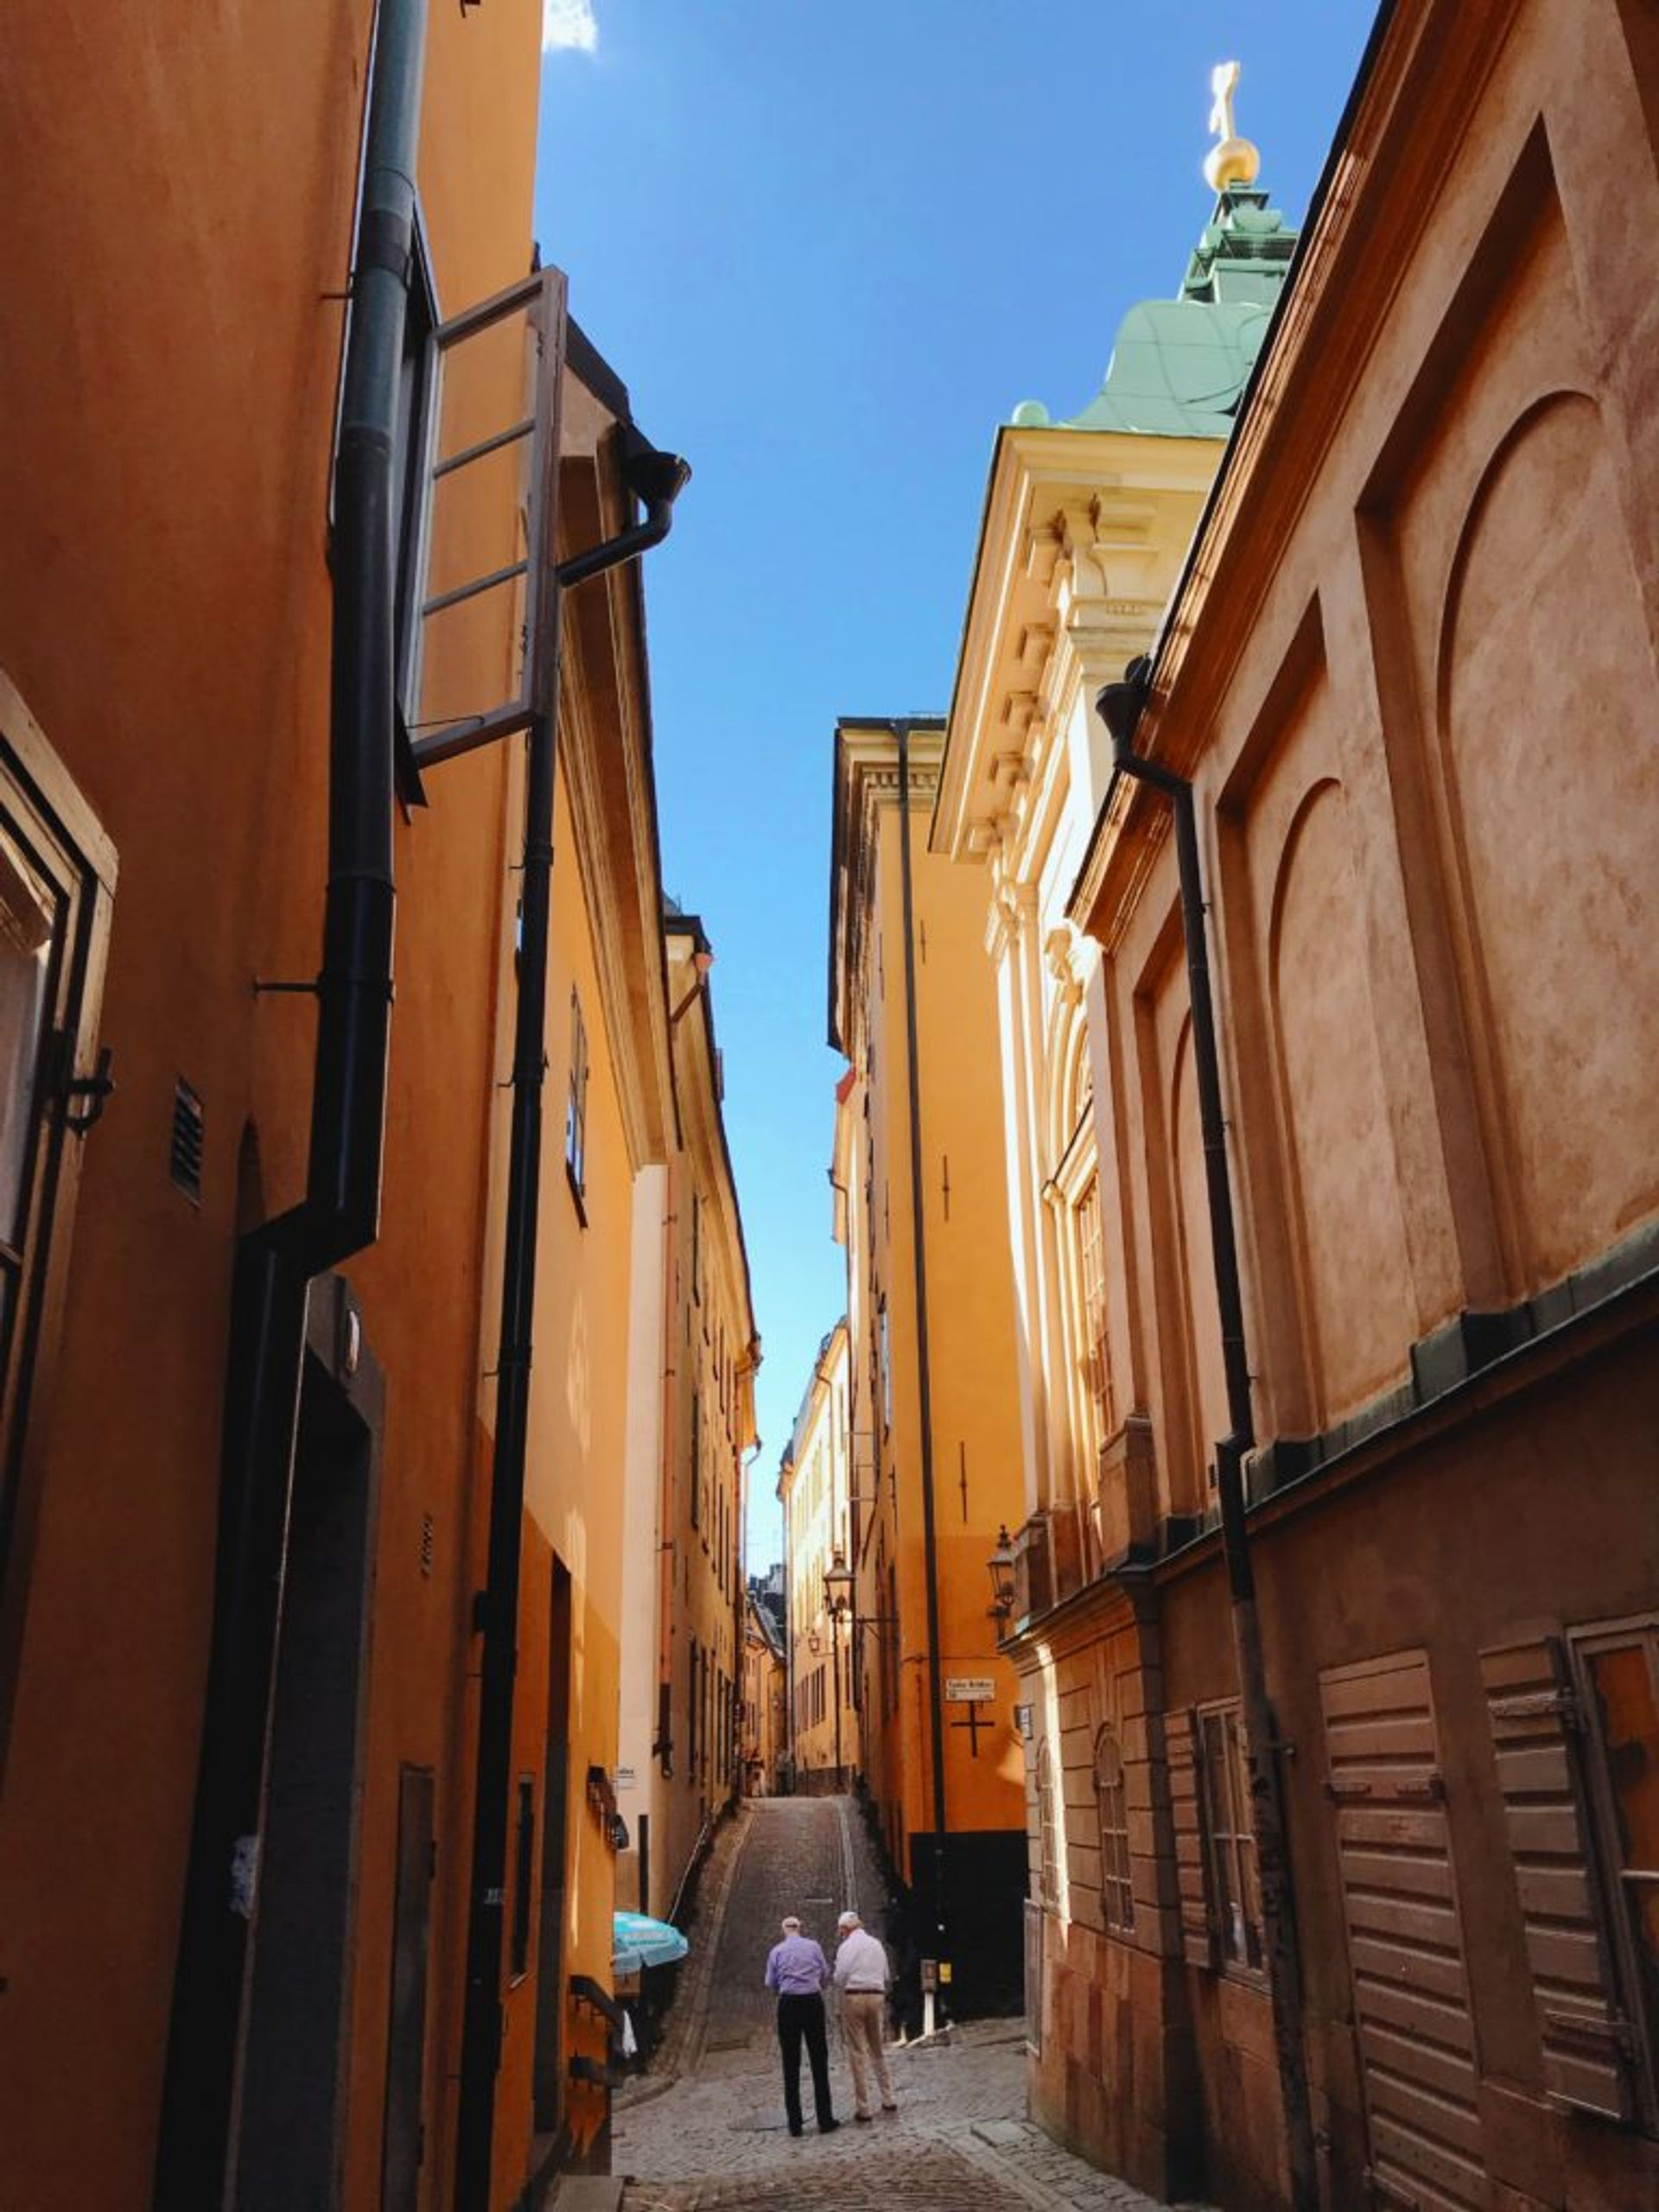 Two older men walking down a narrow, cobbled street in Stockholm's Old Town.